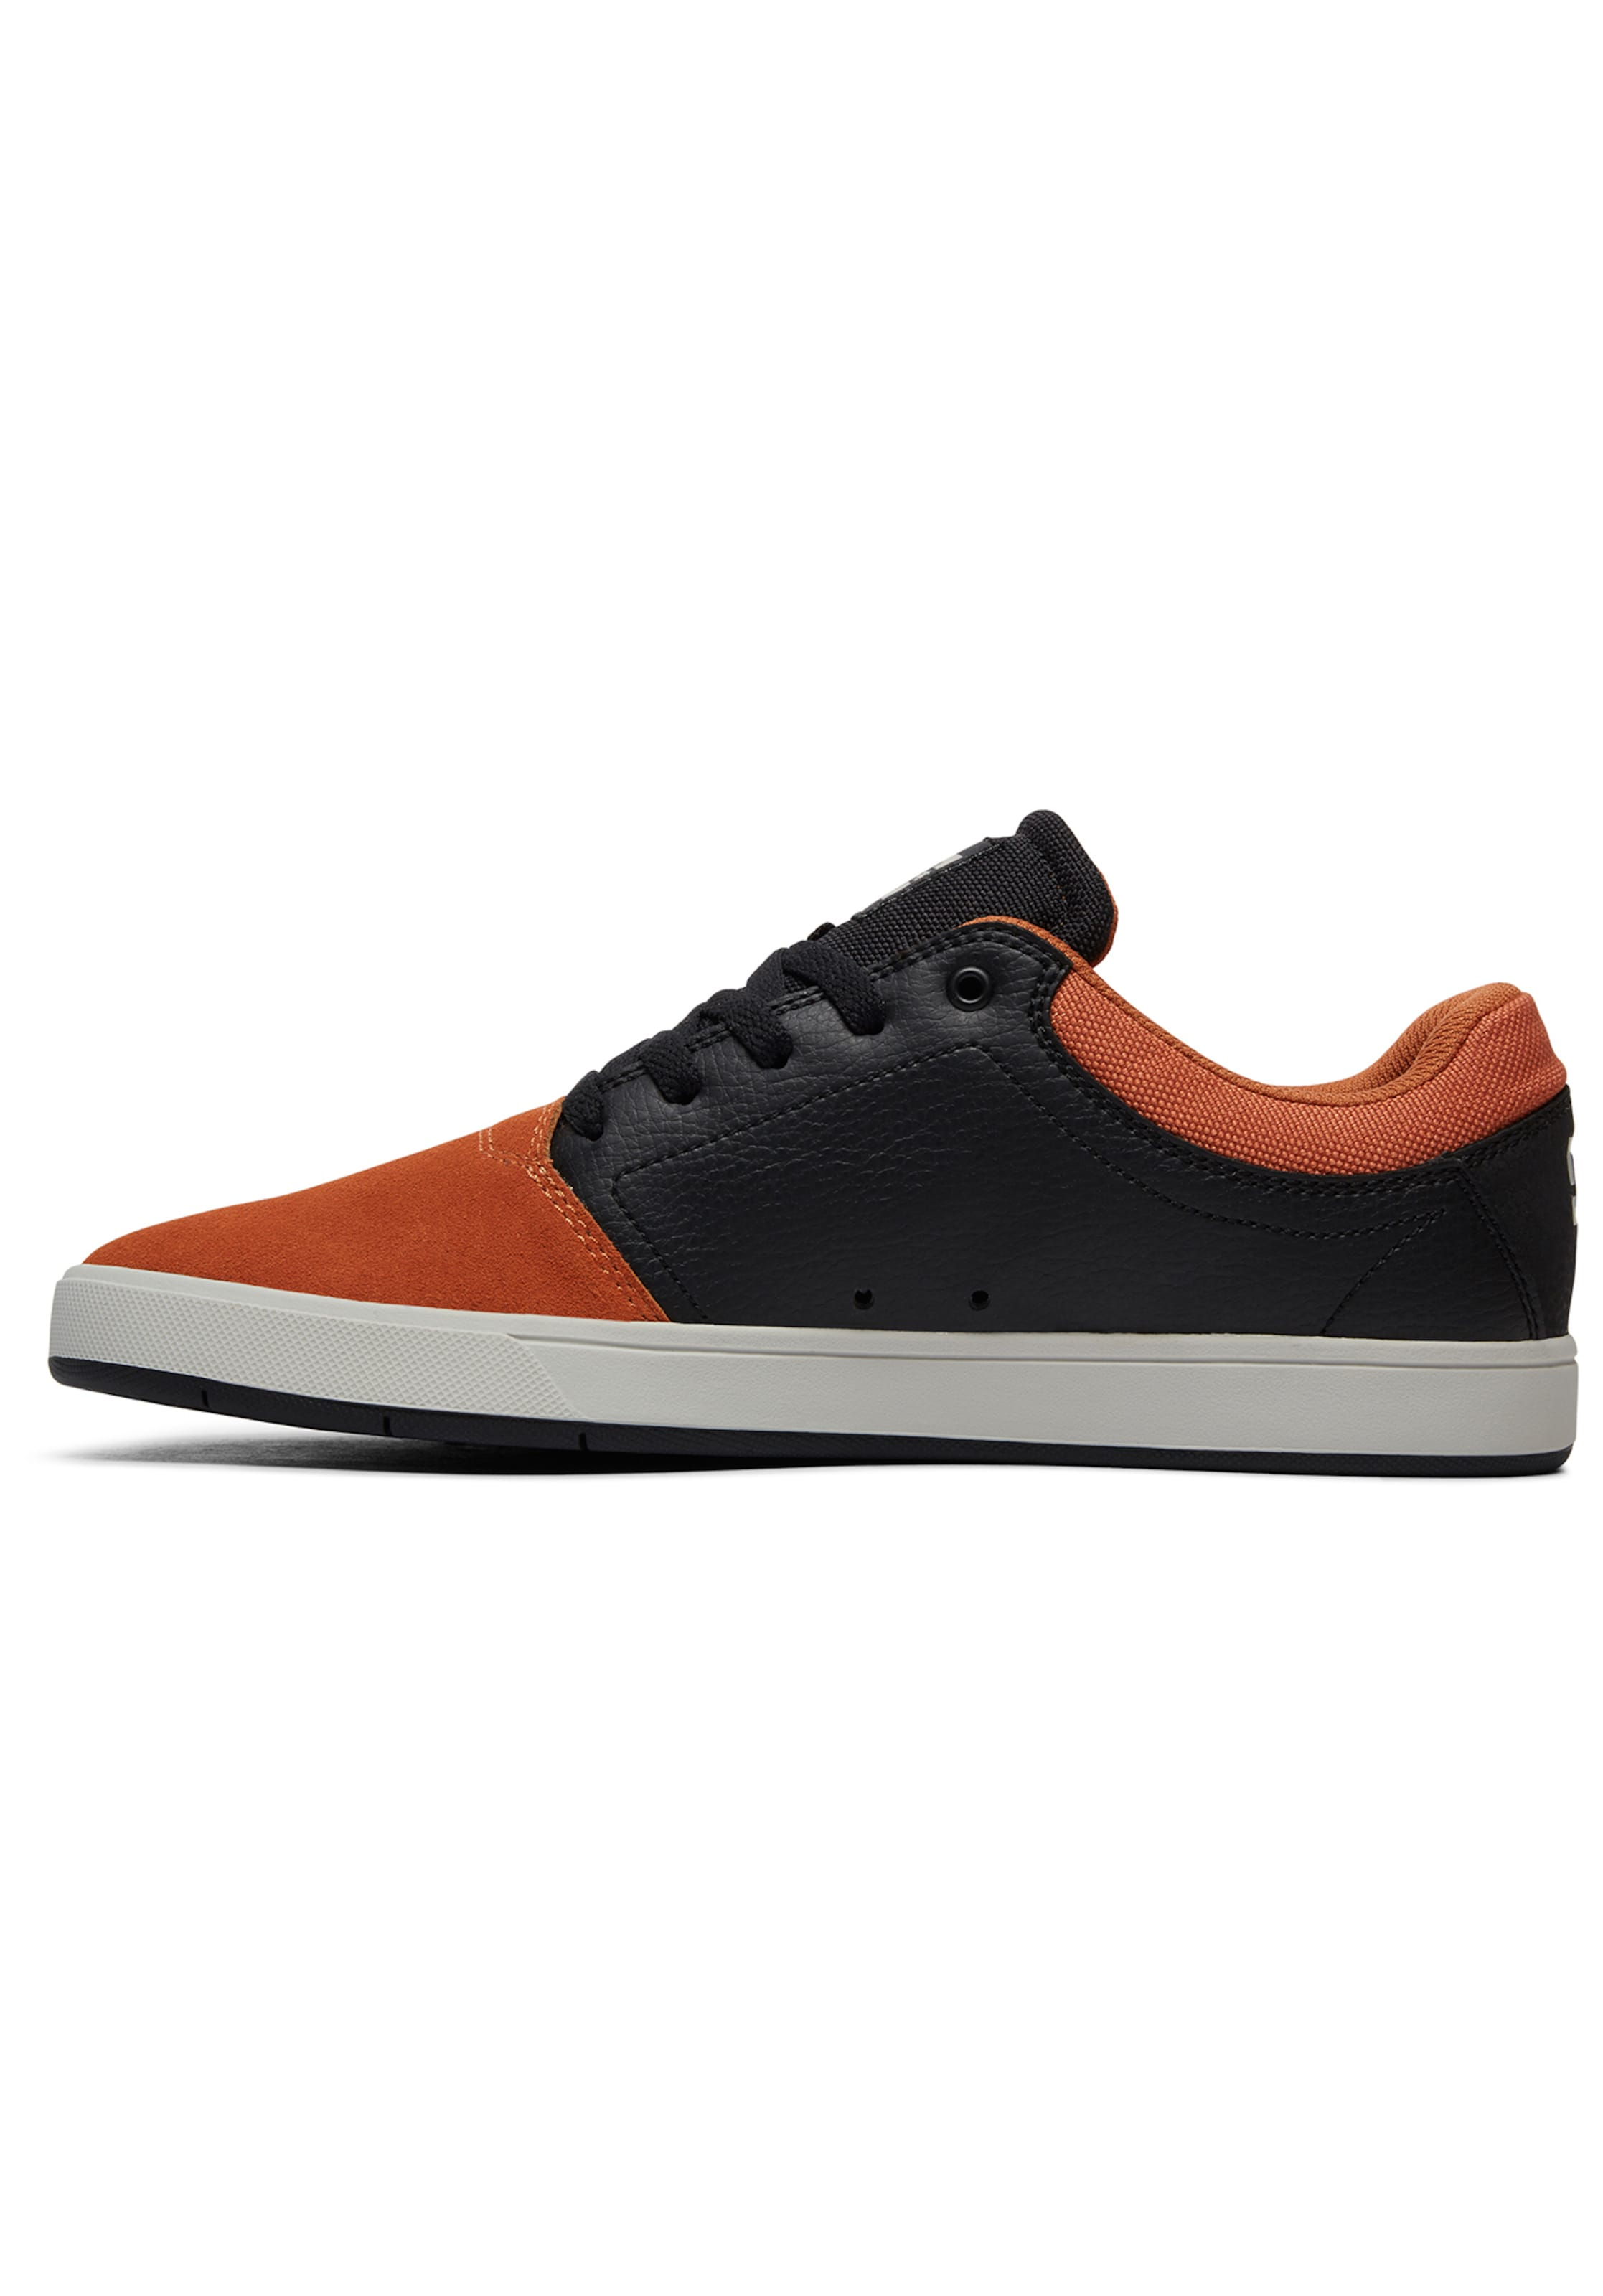 Dc Se BraunSchwarz Sneaker Shoes In Crisis EY2HDIW9